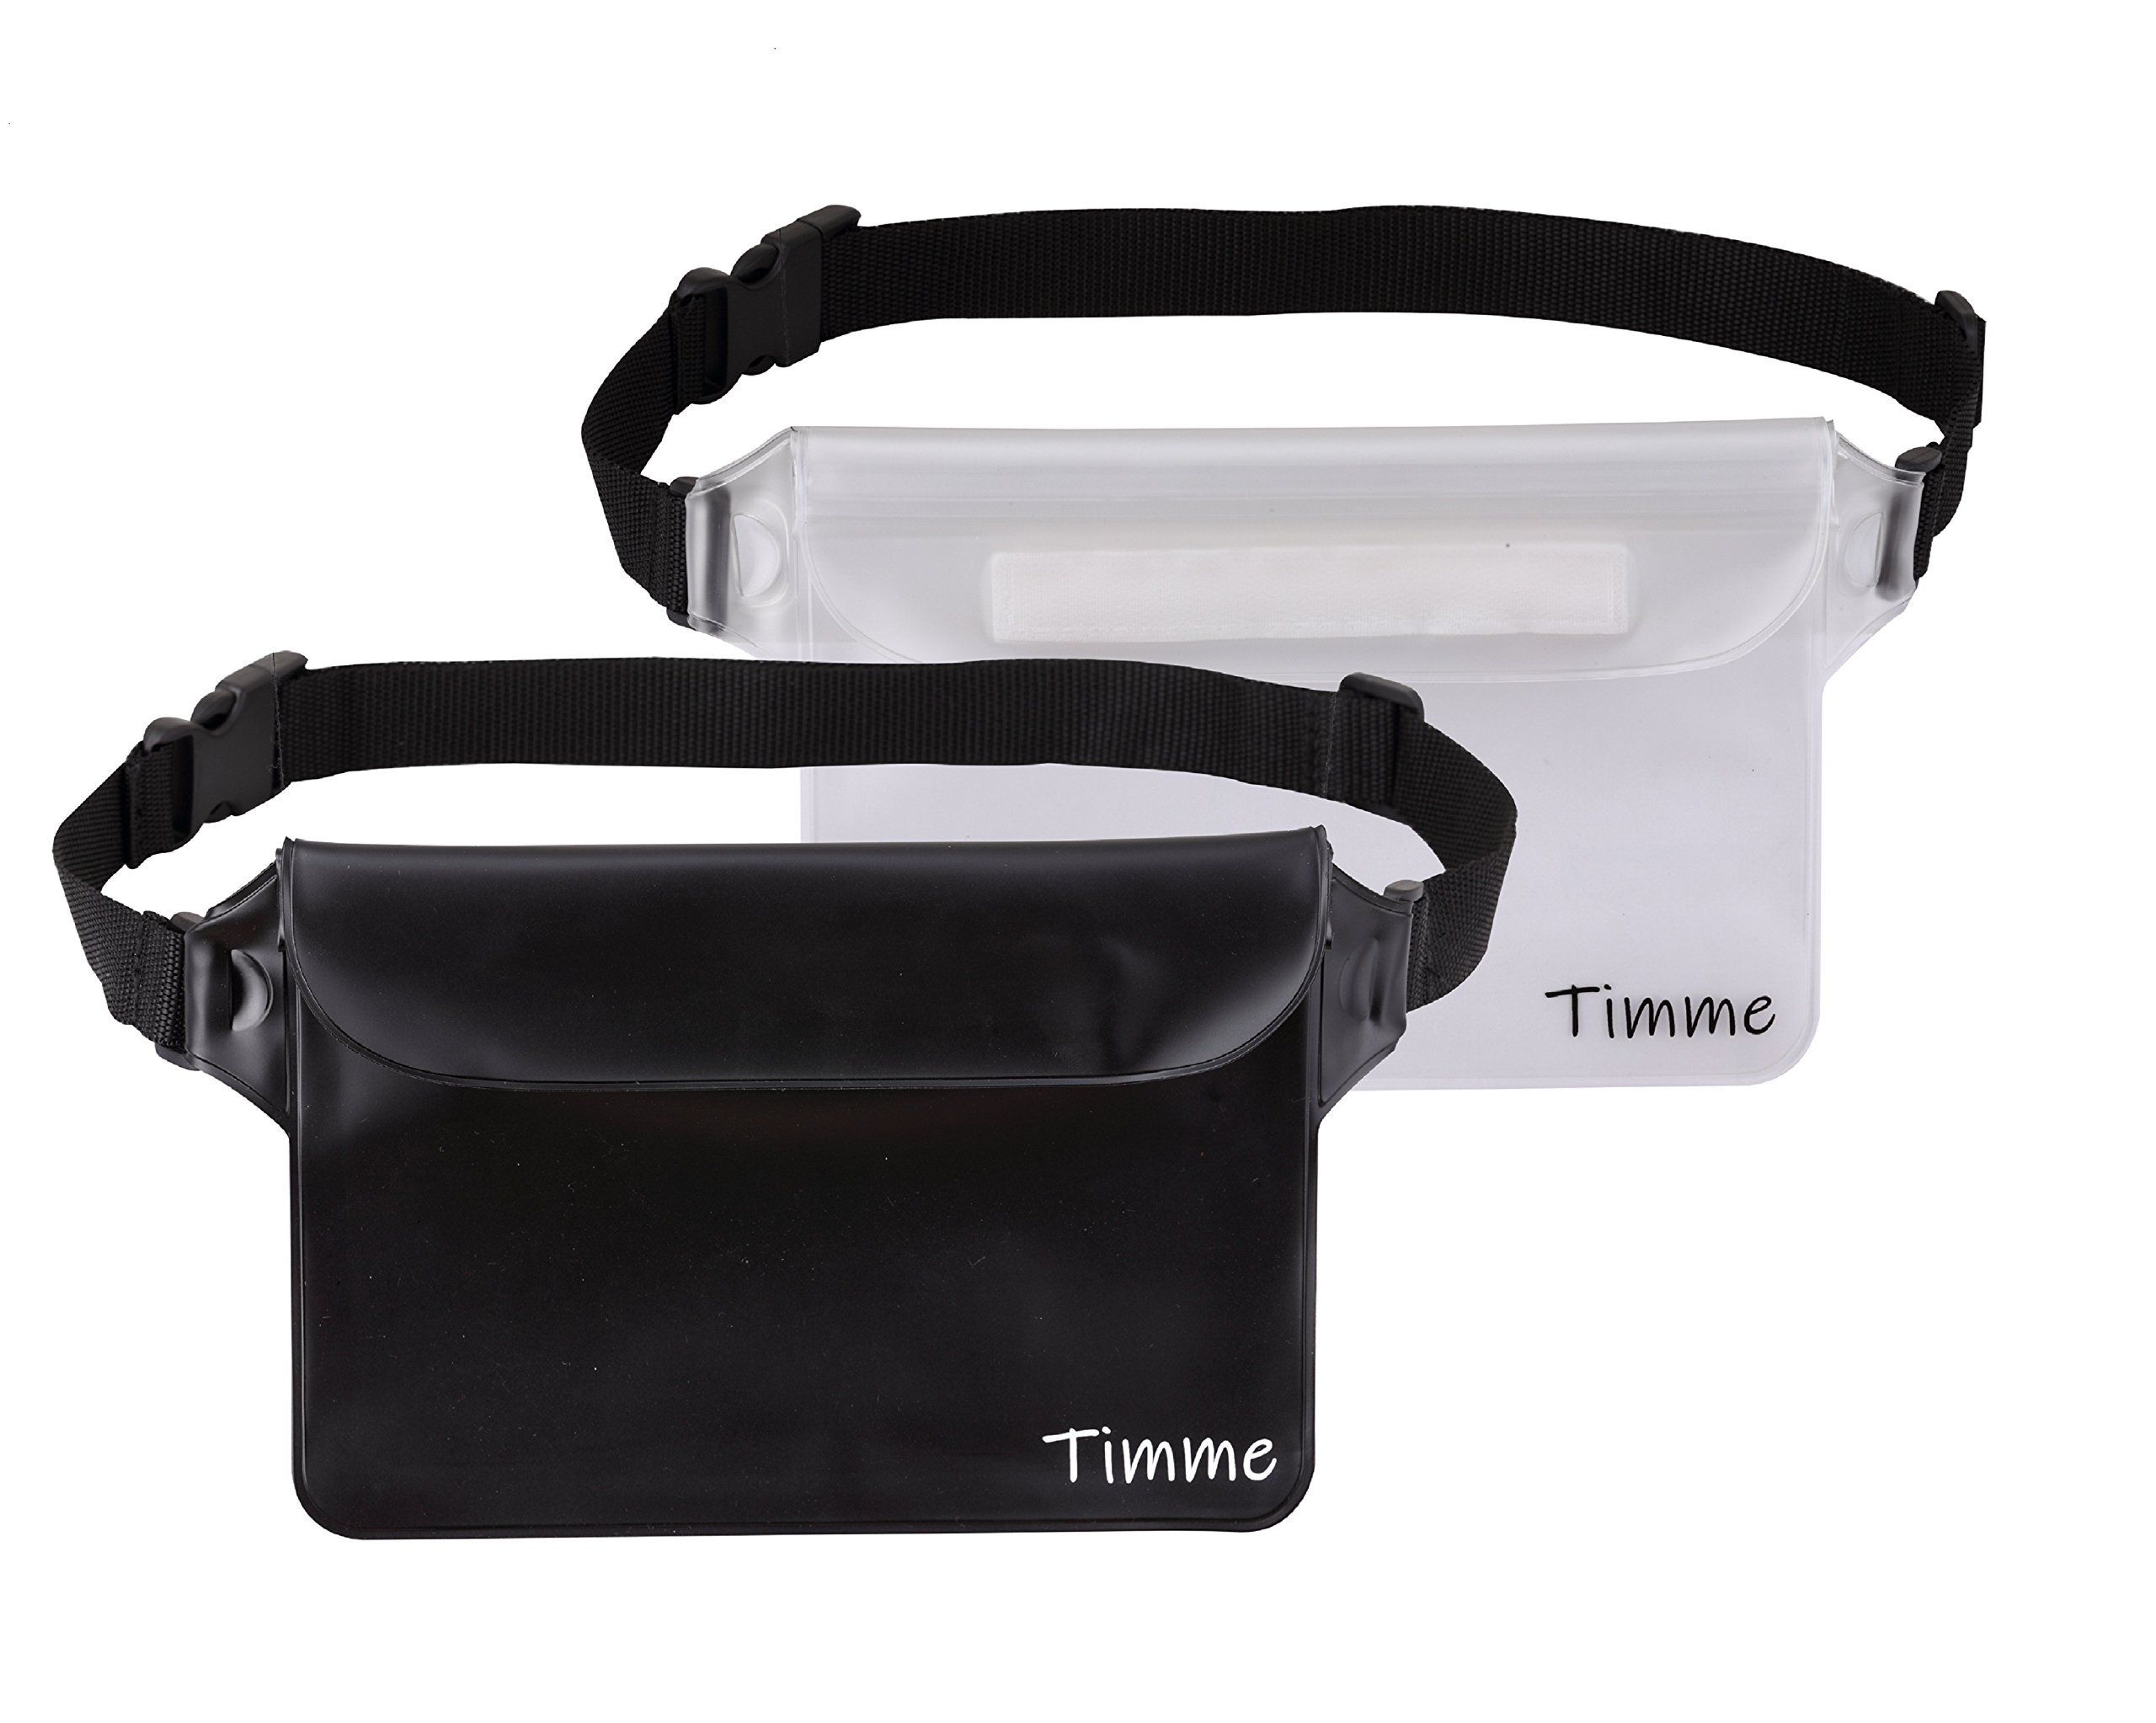 Timme Waterproof Pouch Waist Shoulder Strap | Perfect at Boating Fishing Kayaking Swimming Running Beach Water Sports (2 Pack)